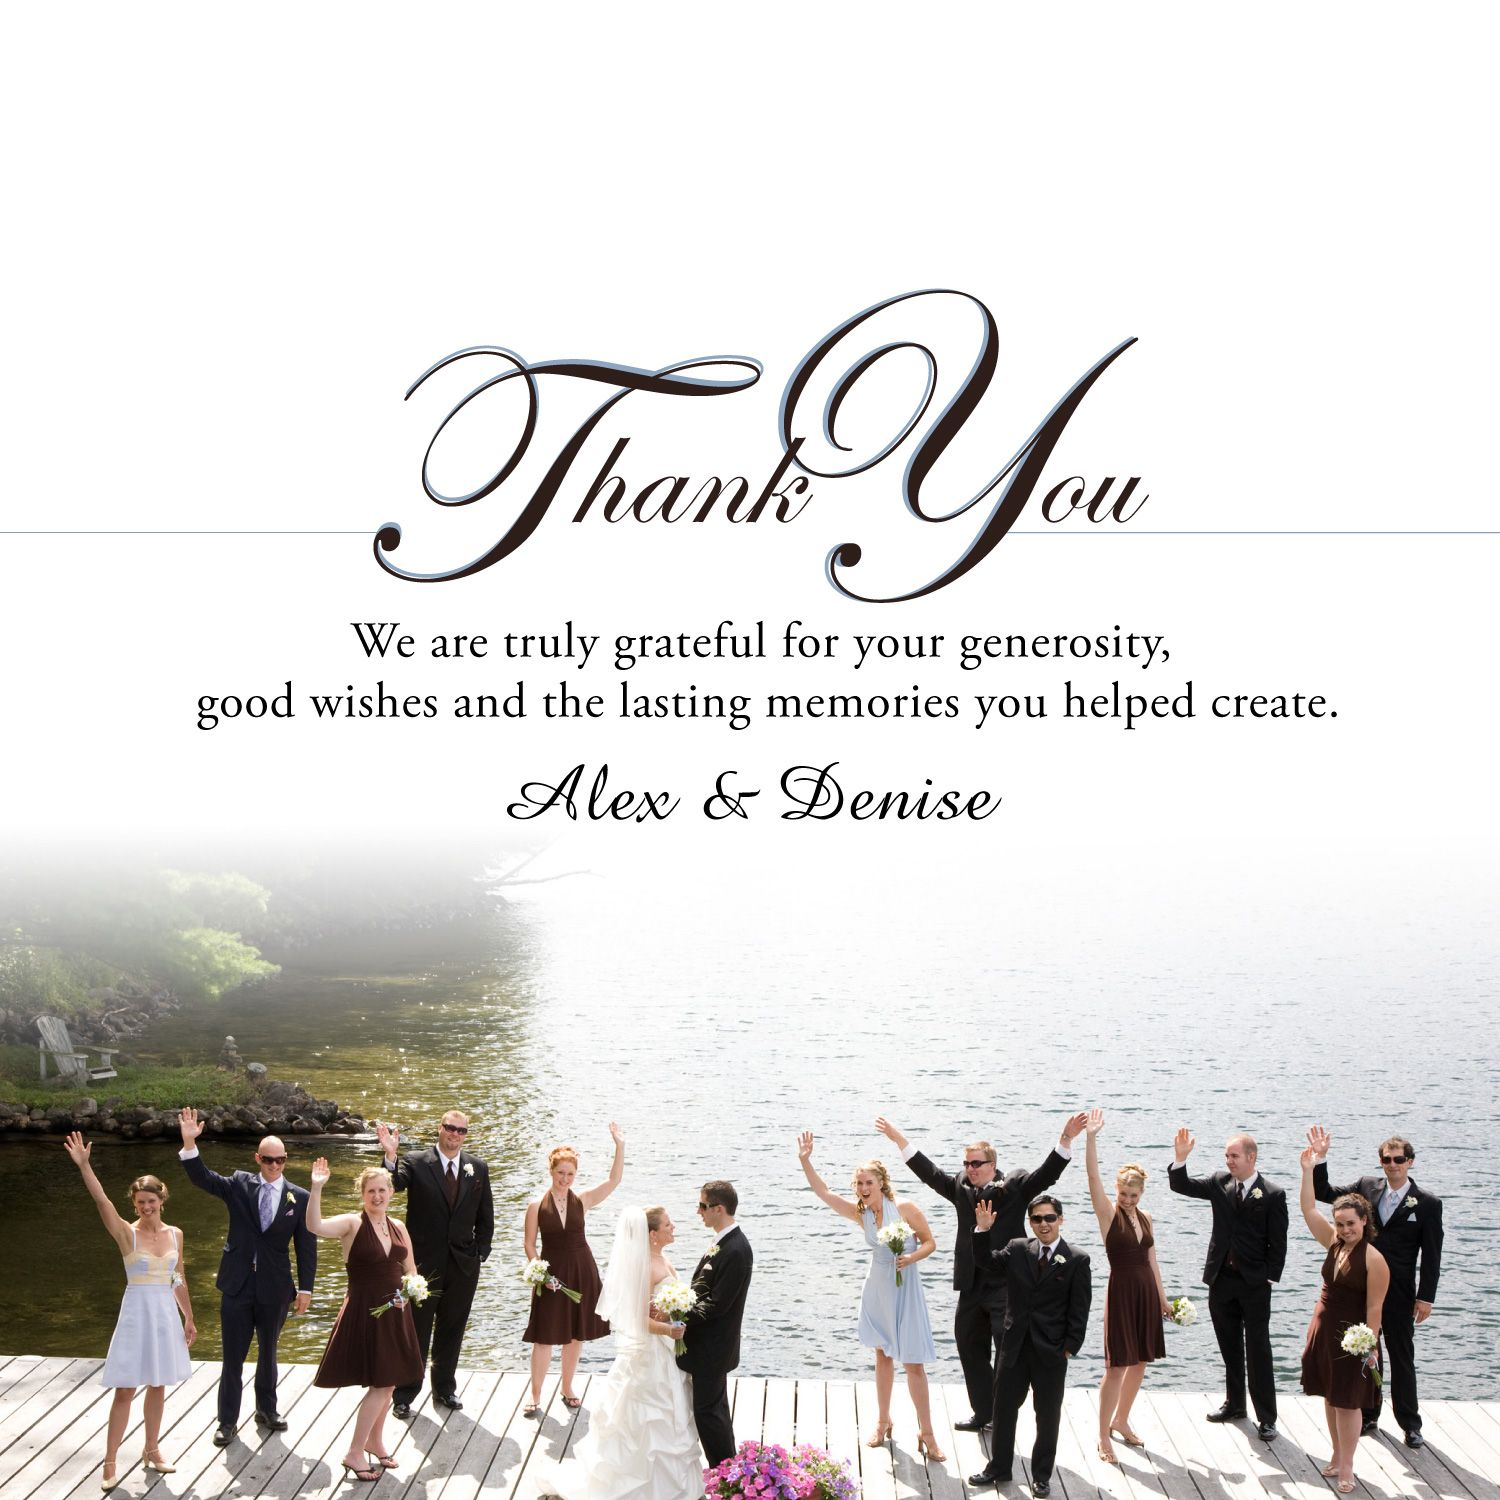 Wedding Thank You Cards in a hurry – What to Write in Wedding Thank You Cards Sample